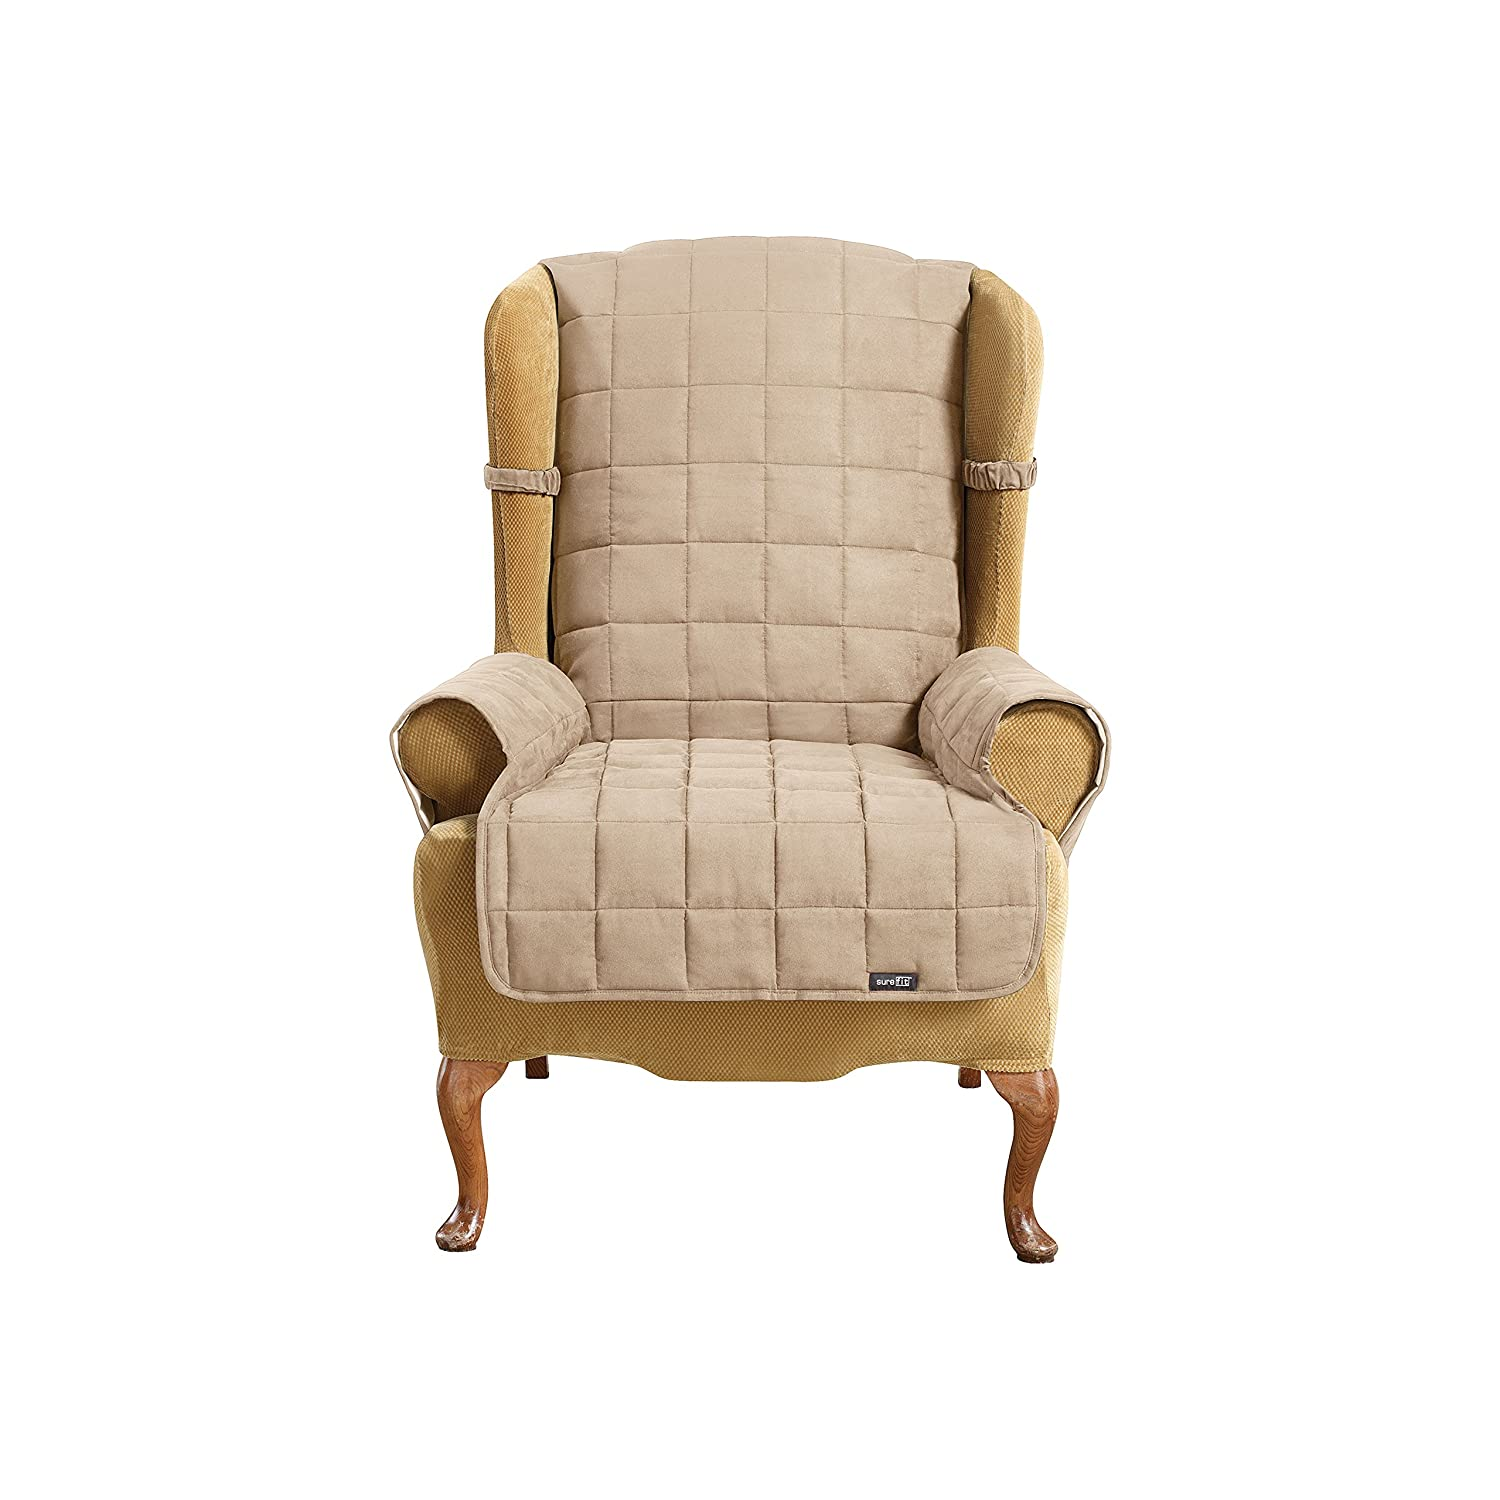 Amazon Sure Fit Soft Suede Waterproof Wing Chair Slipcover